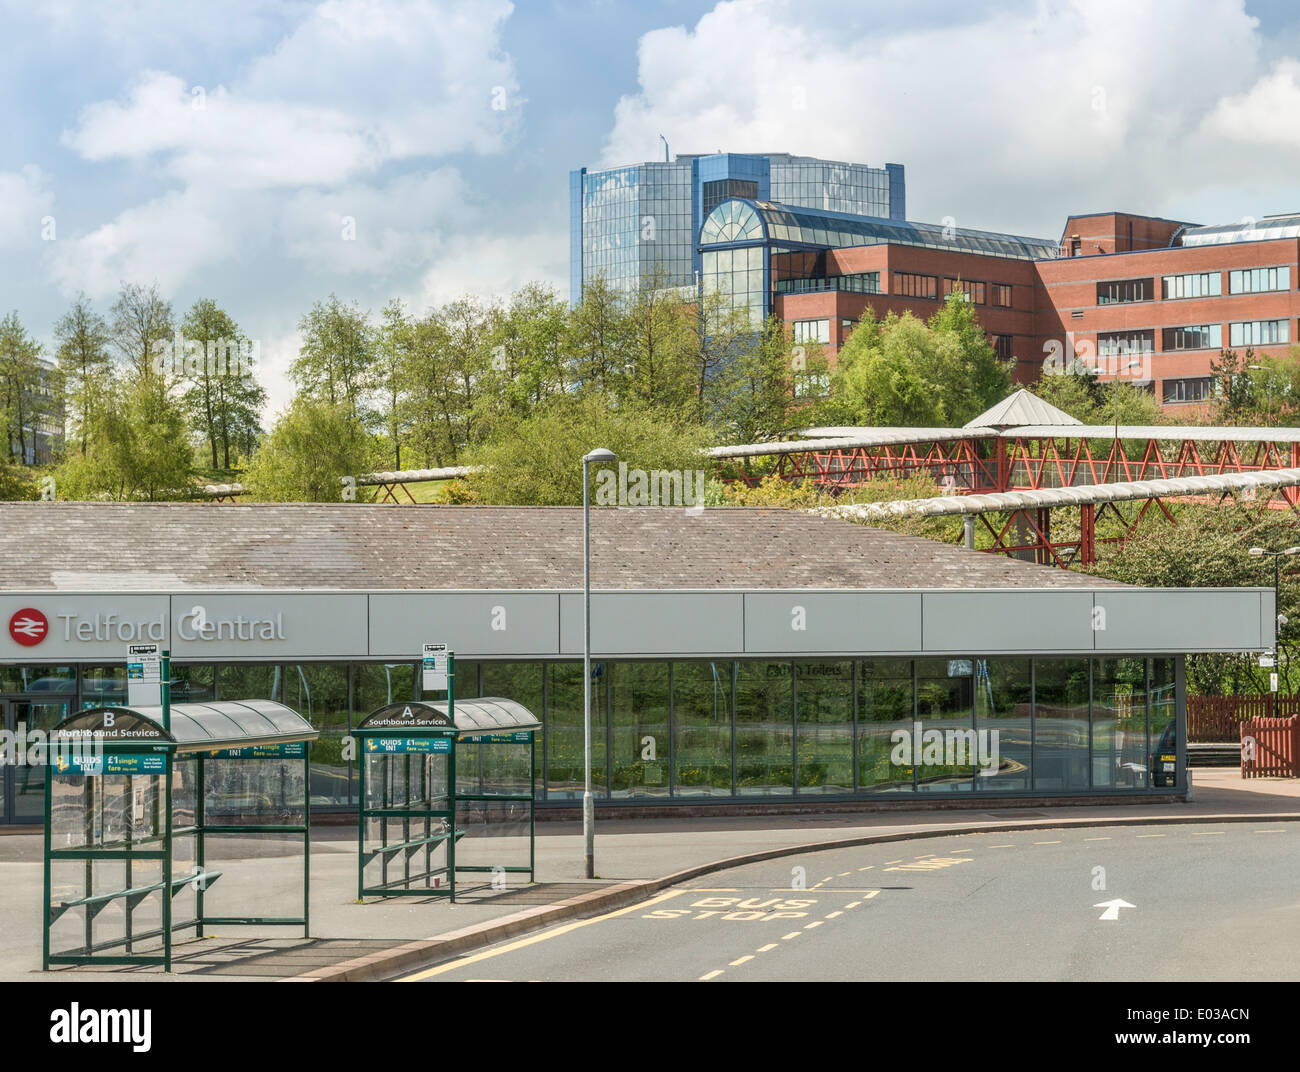 Telford Central train station and town centre in the background, Shropshire - Stock Image